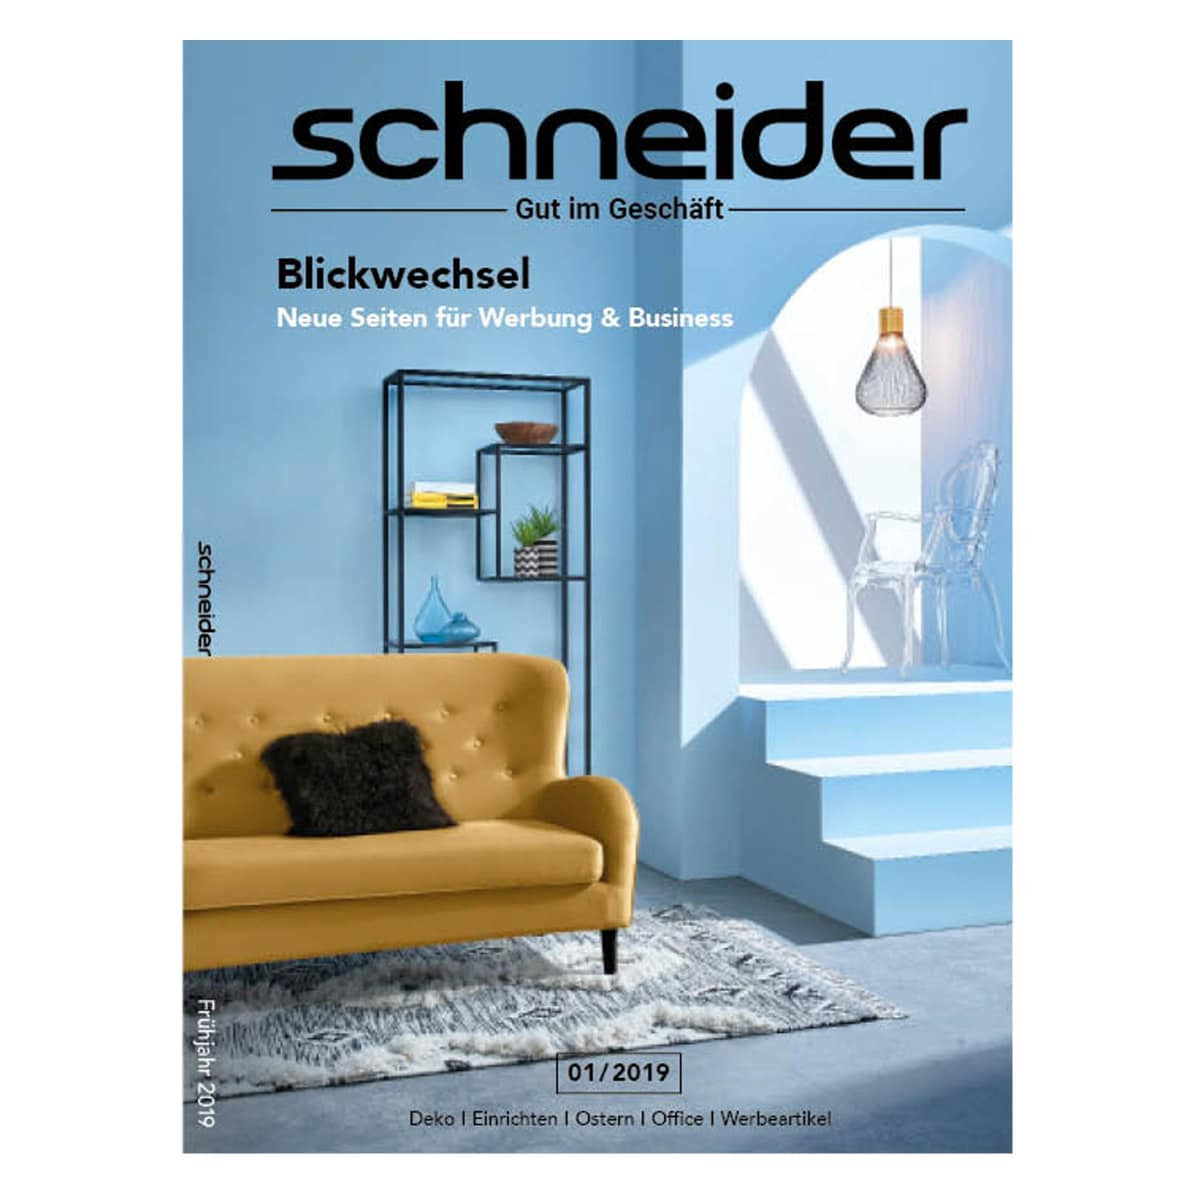 katalog bestellen im online shop schneider de. Black Bedroom Furniture Sets. Home Design Ideas